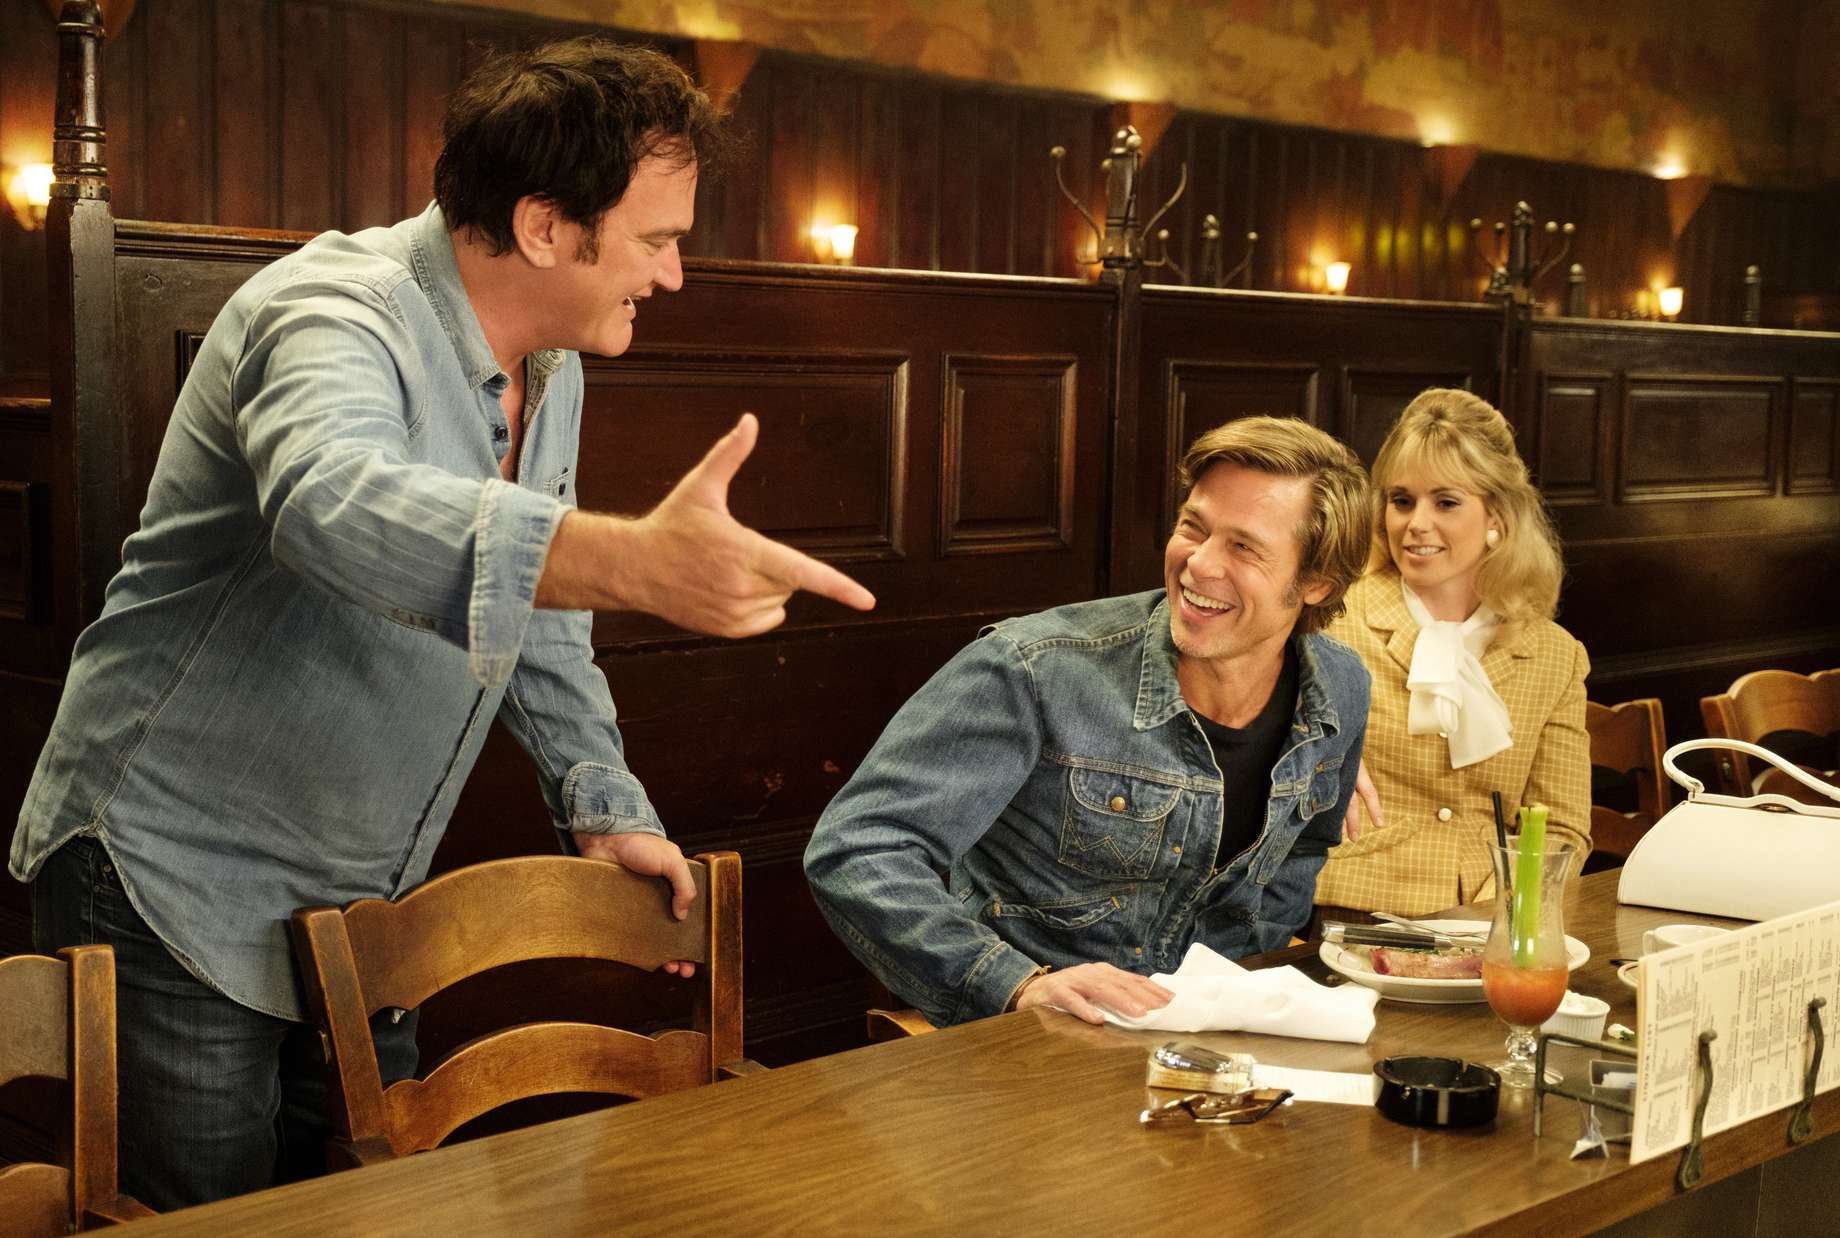 once upon a time in hollywood brad pitt quentin tarantino margot robbie leonardo dicaprio al pacino film c'era una volta a hollywood